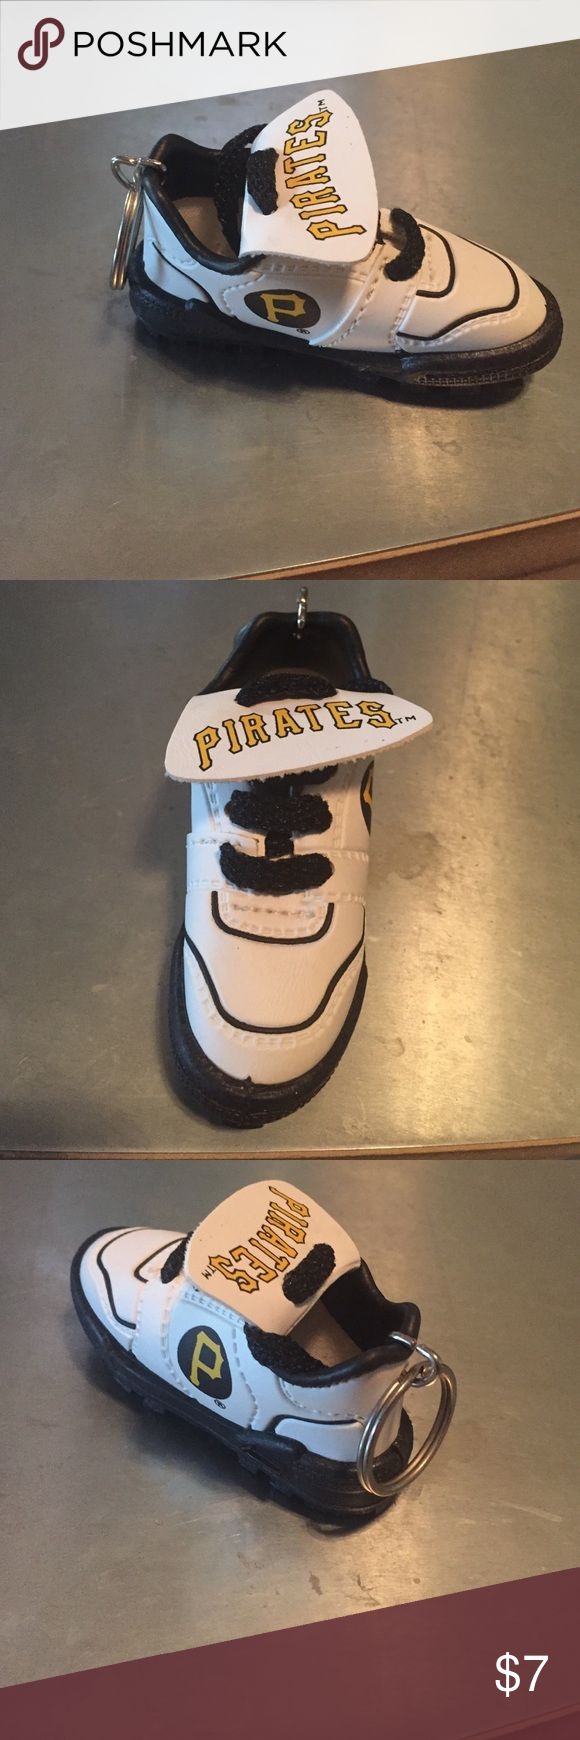 MLB Pirates Sneaker Key Chain Vintage MLB Pirates sneaker key chain. Pristine condition. Pirates logo on each side of sneaker & Pirates name on sneaker tongue. Also has actual laces that can be adjusted. Perfect for MLB and Pirates fans/collectors. MLB Accessories Key & Card Holders